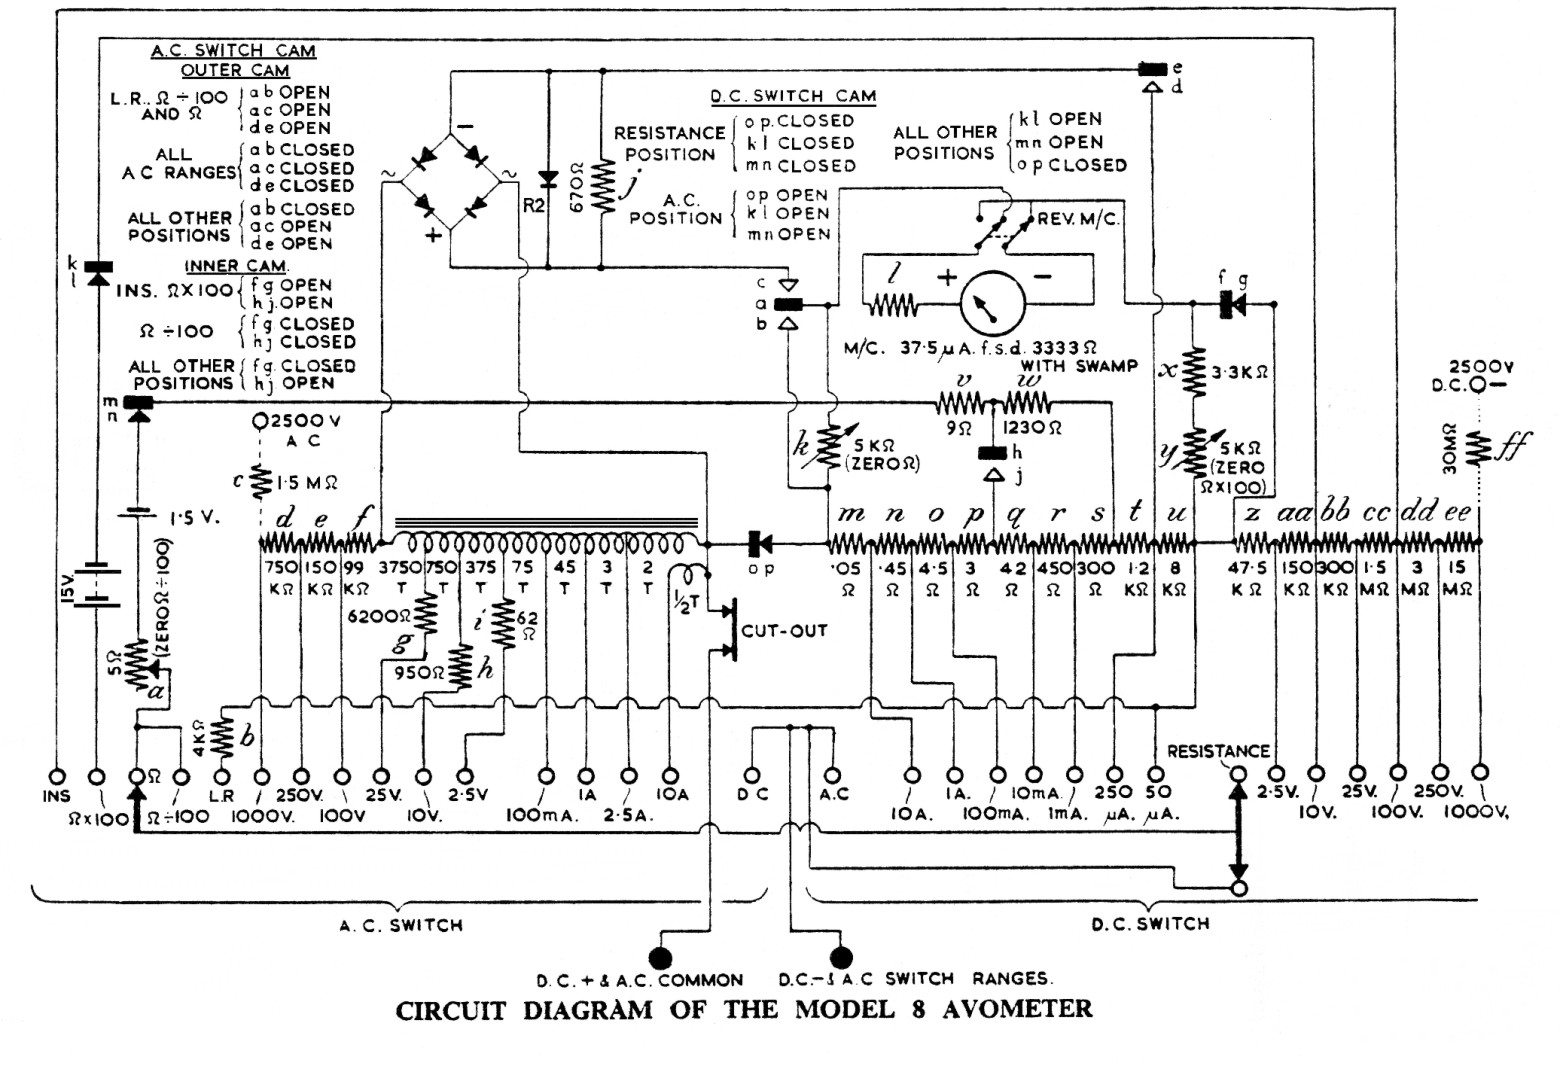 Avo 8 Circuit Diagram Free Wiring For You Pengertian Mk 7 Trusted 1920 Avometer Digital